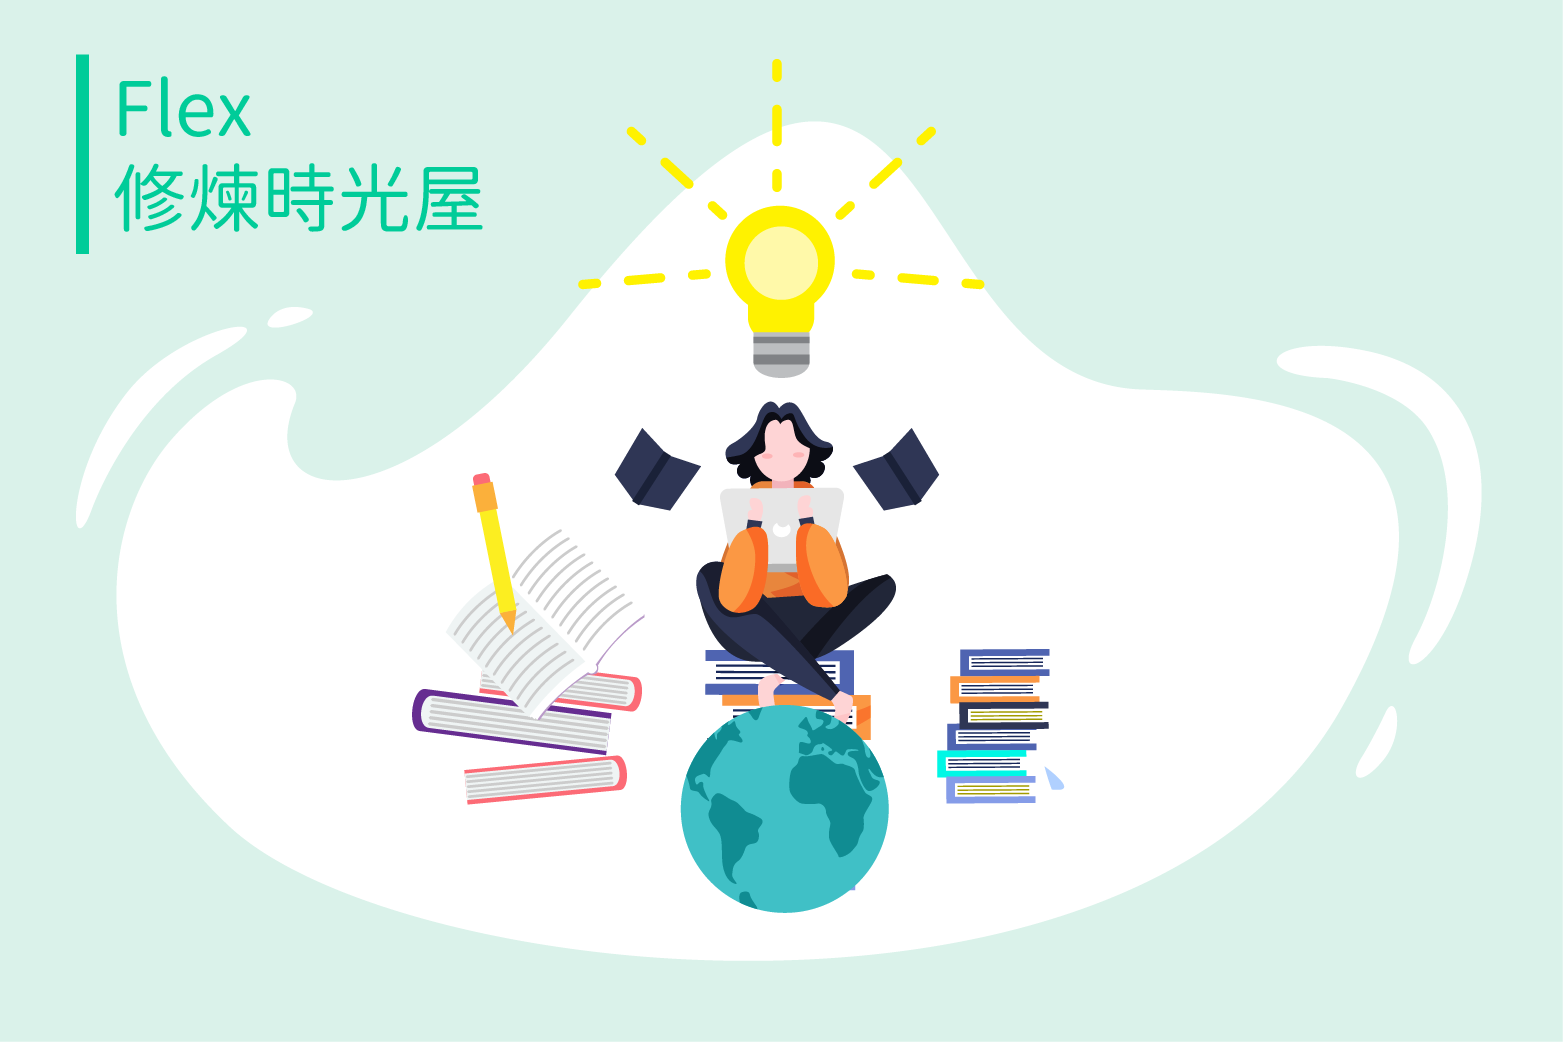 圖來自 https://www.freepik.com/free-photos-vectors/education Education vector created by freepik - www.freepik.com